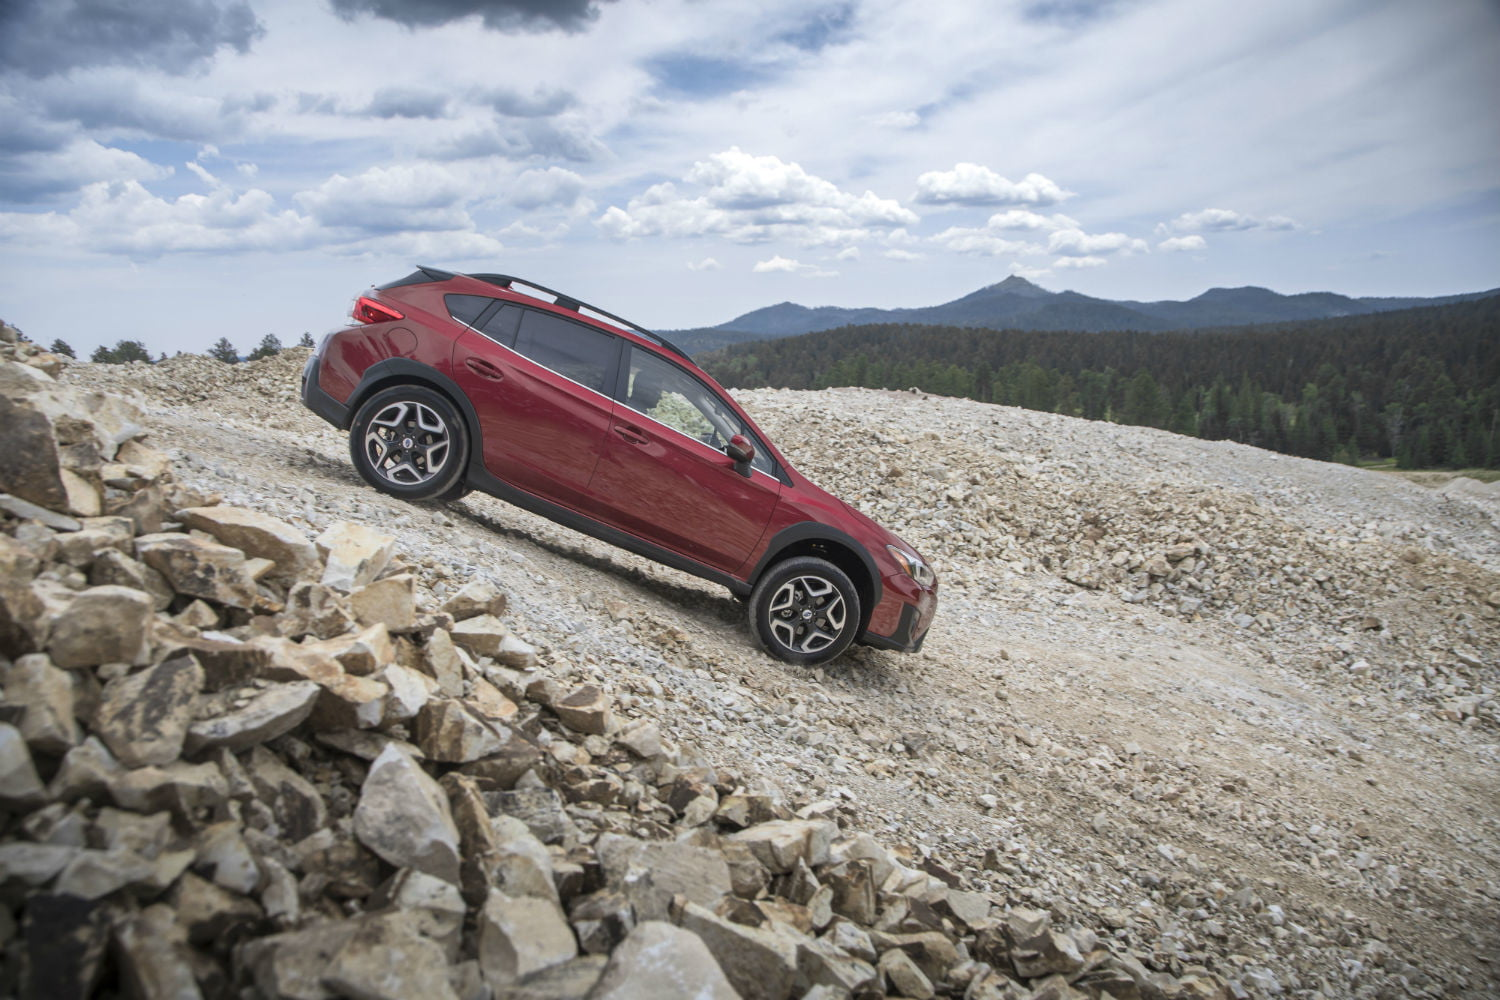 2018 Subaru Crosstrek Specs Pictures Features Prices News Harman Kardon Wiring Diagram Digital Trends